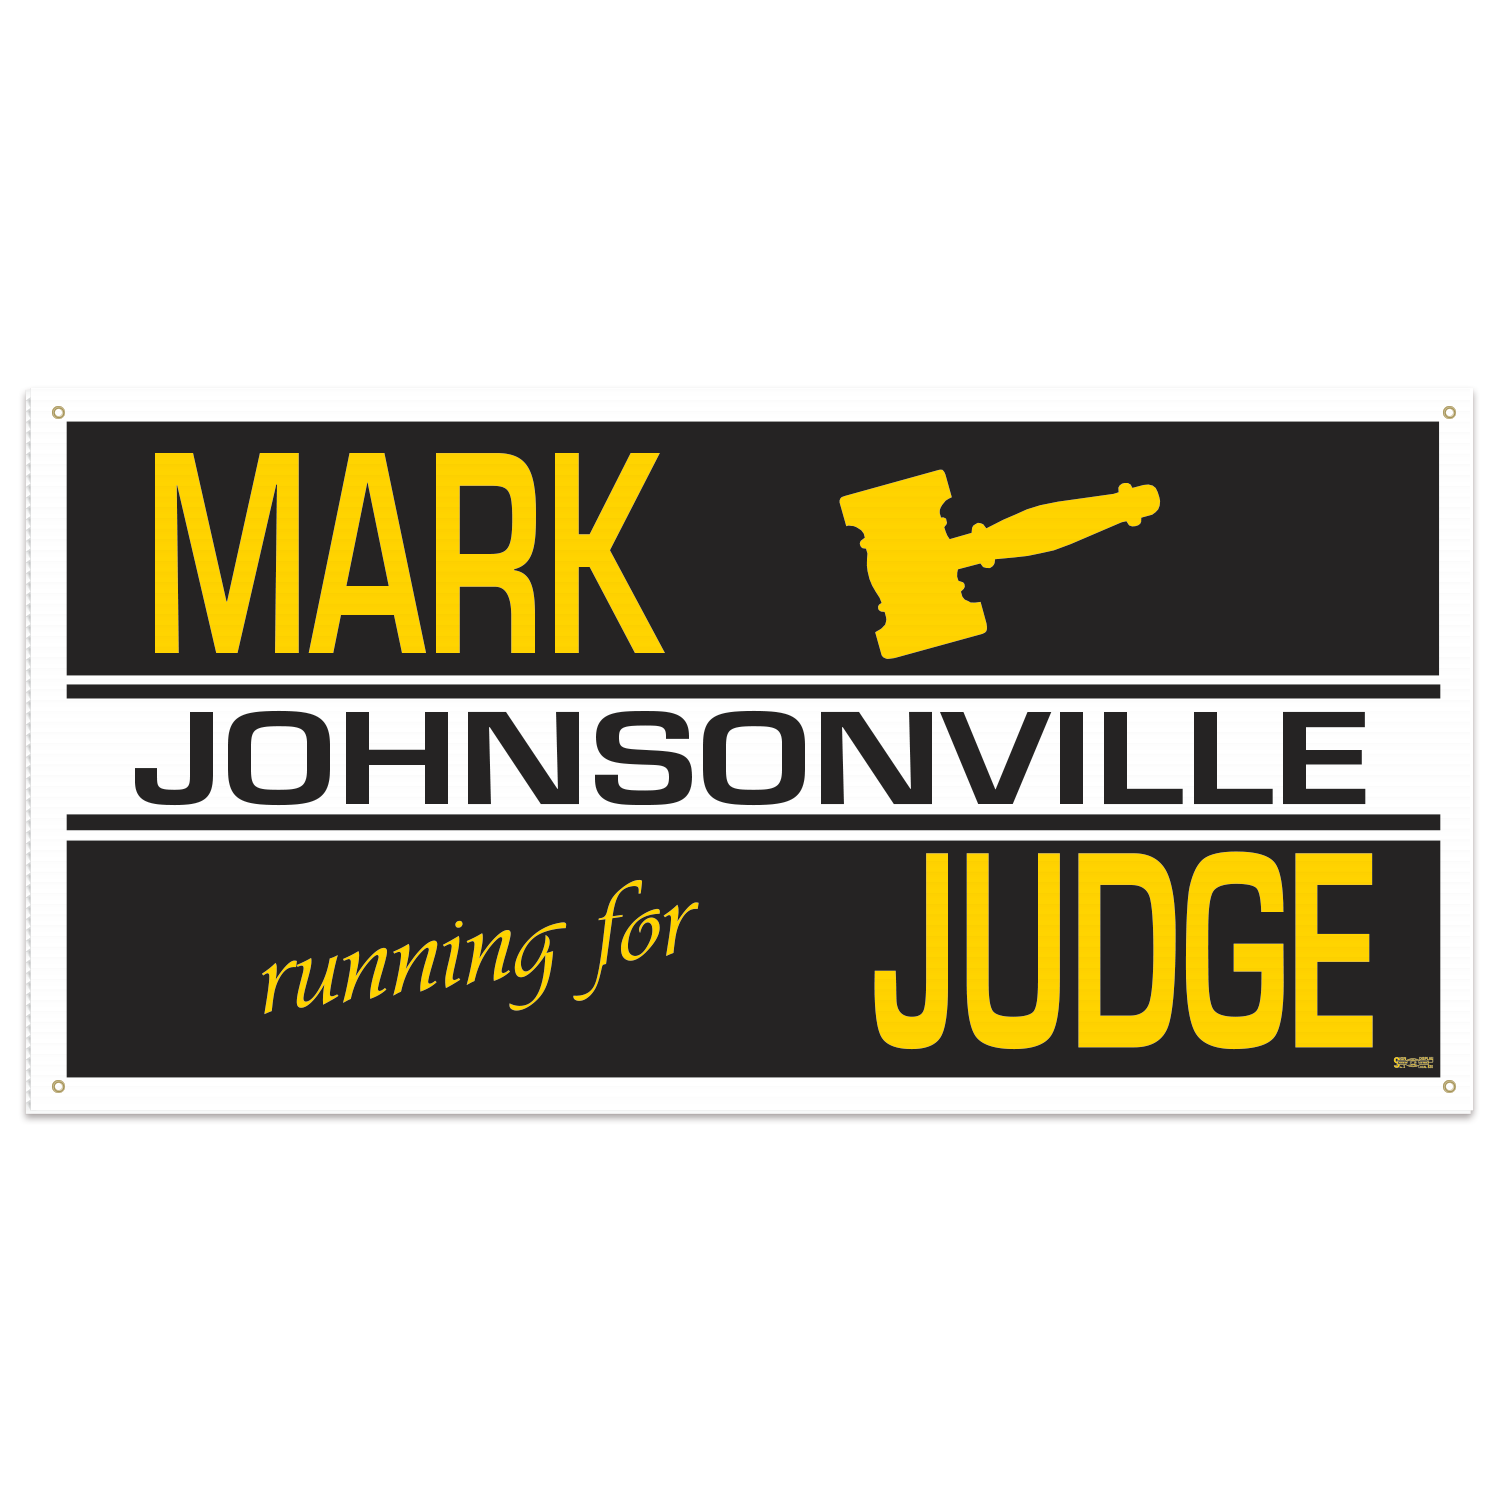 https://www.sswprinting.com/images/products_gallery_images/17731_Mark-Johnsonville_hi-res.png